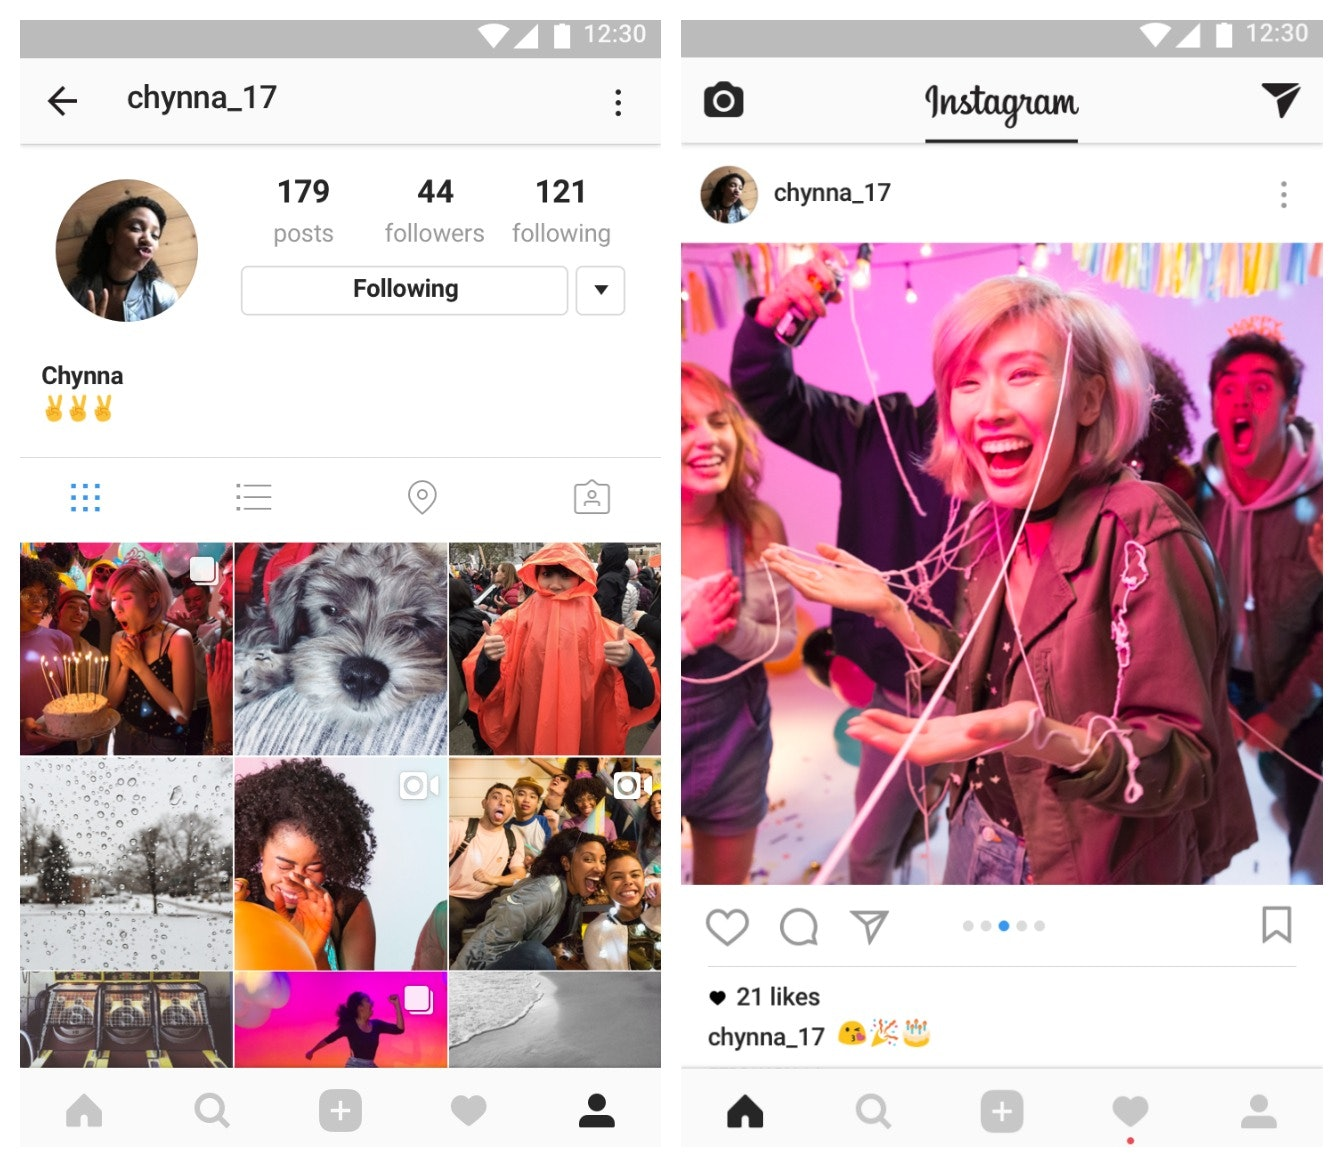 With Instagram's latest update, everyone can share multiple photos in a post